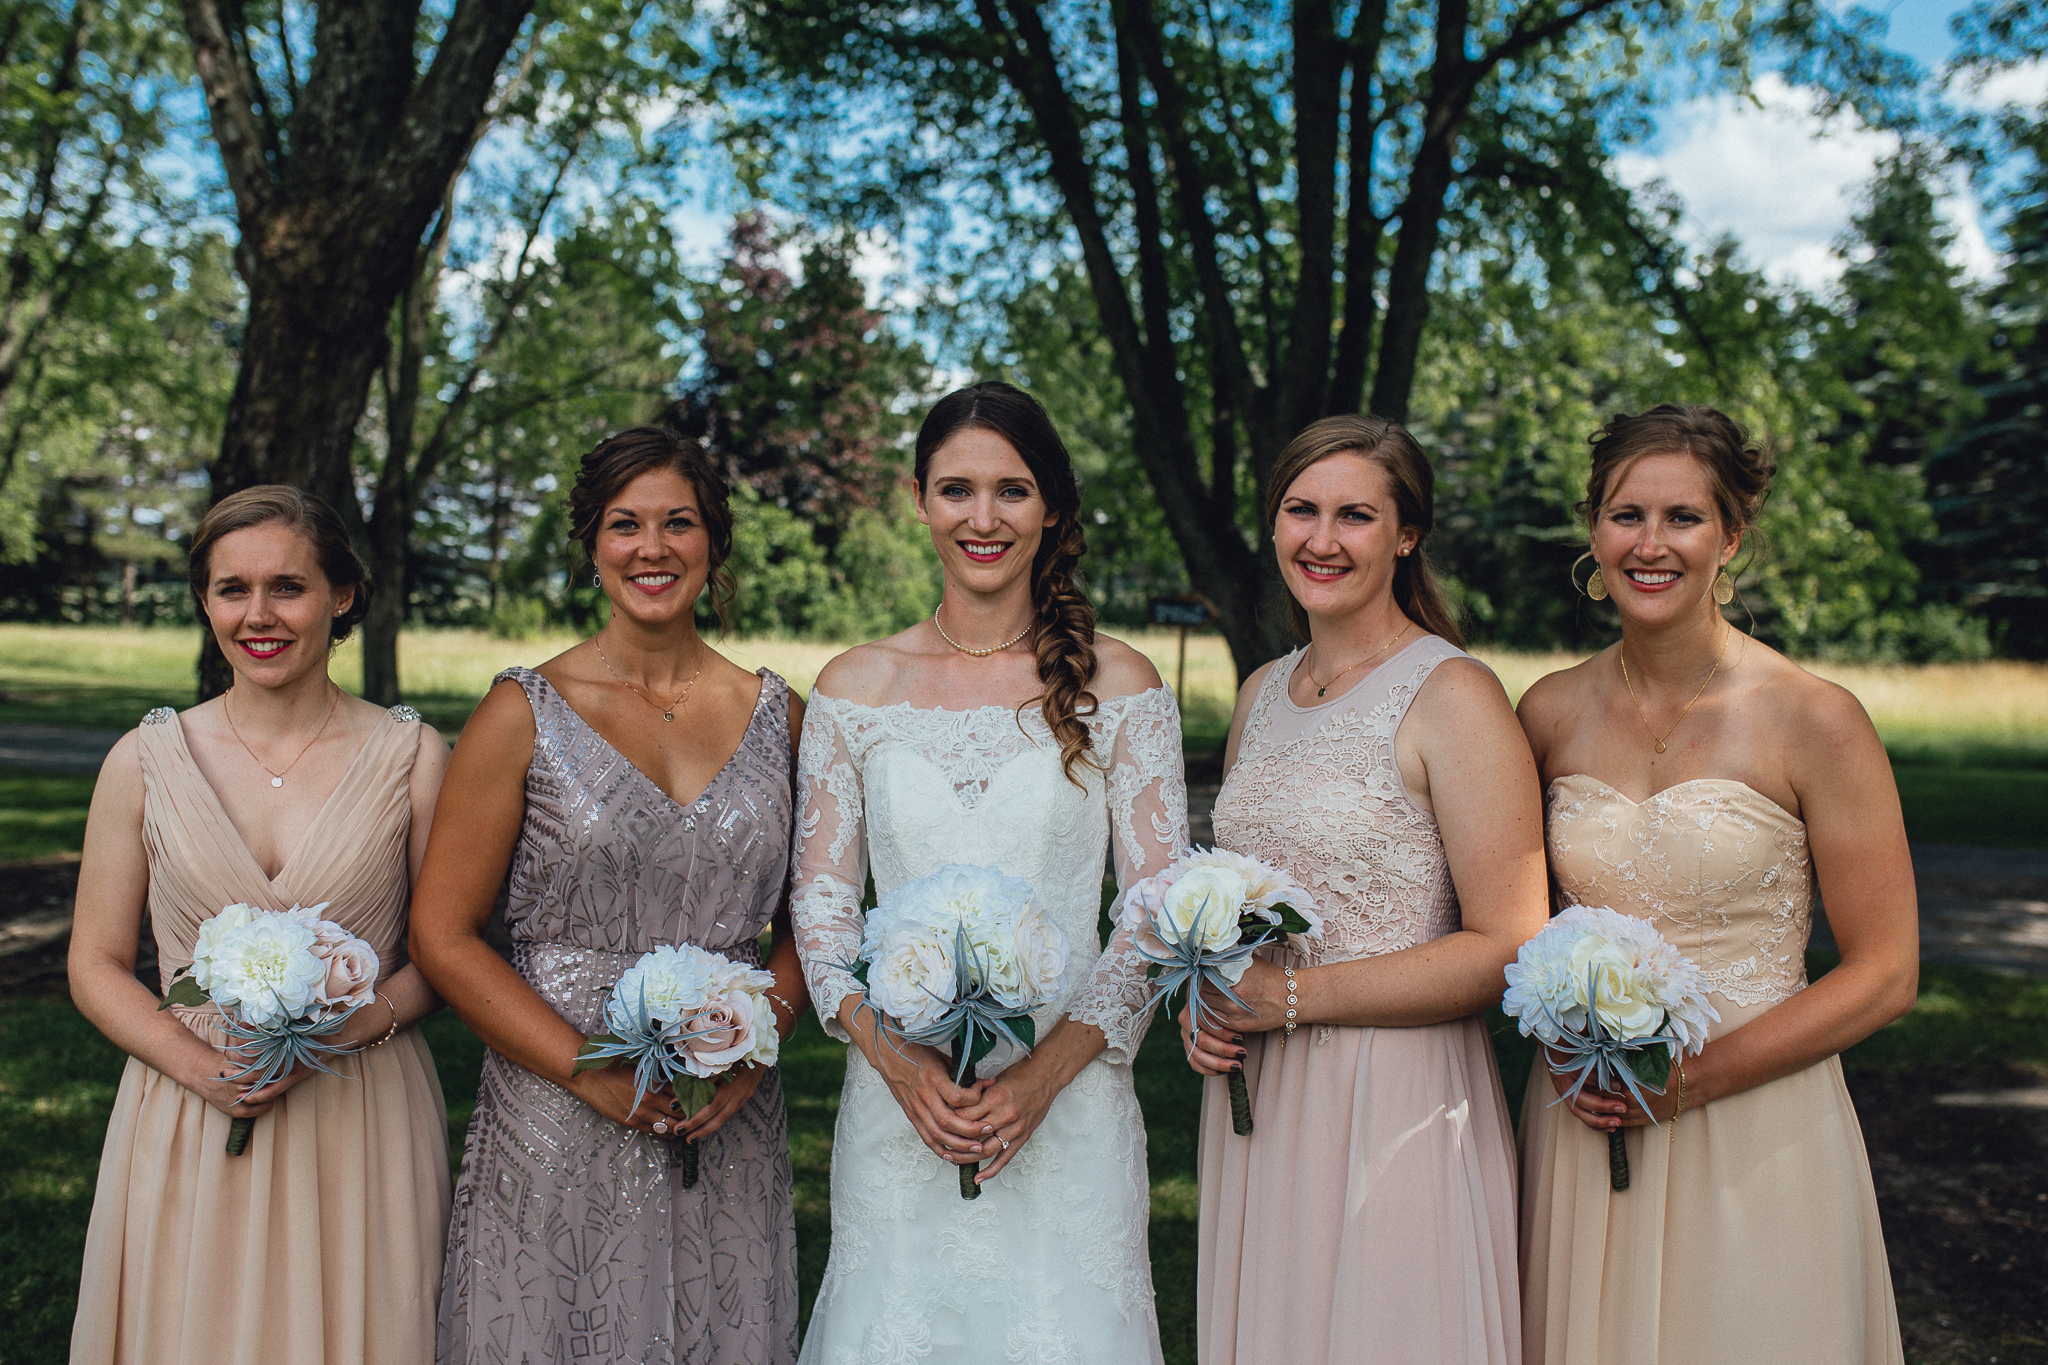 Matt & Becca - Caribou Bay Retreat - Up North Rustic Wisconsin Wedding